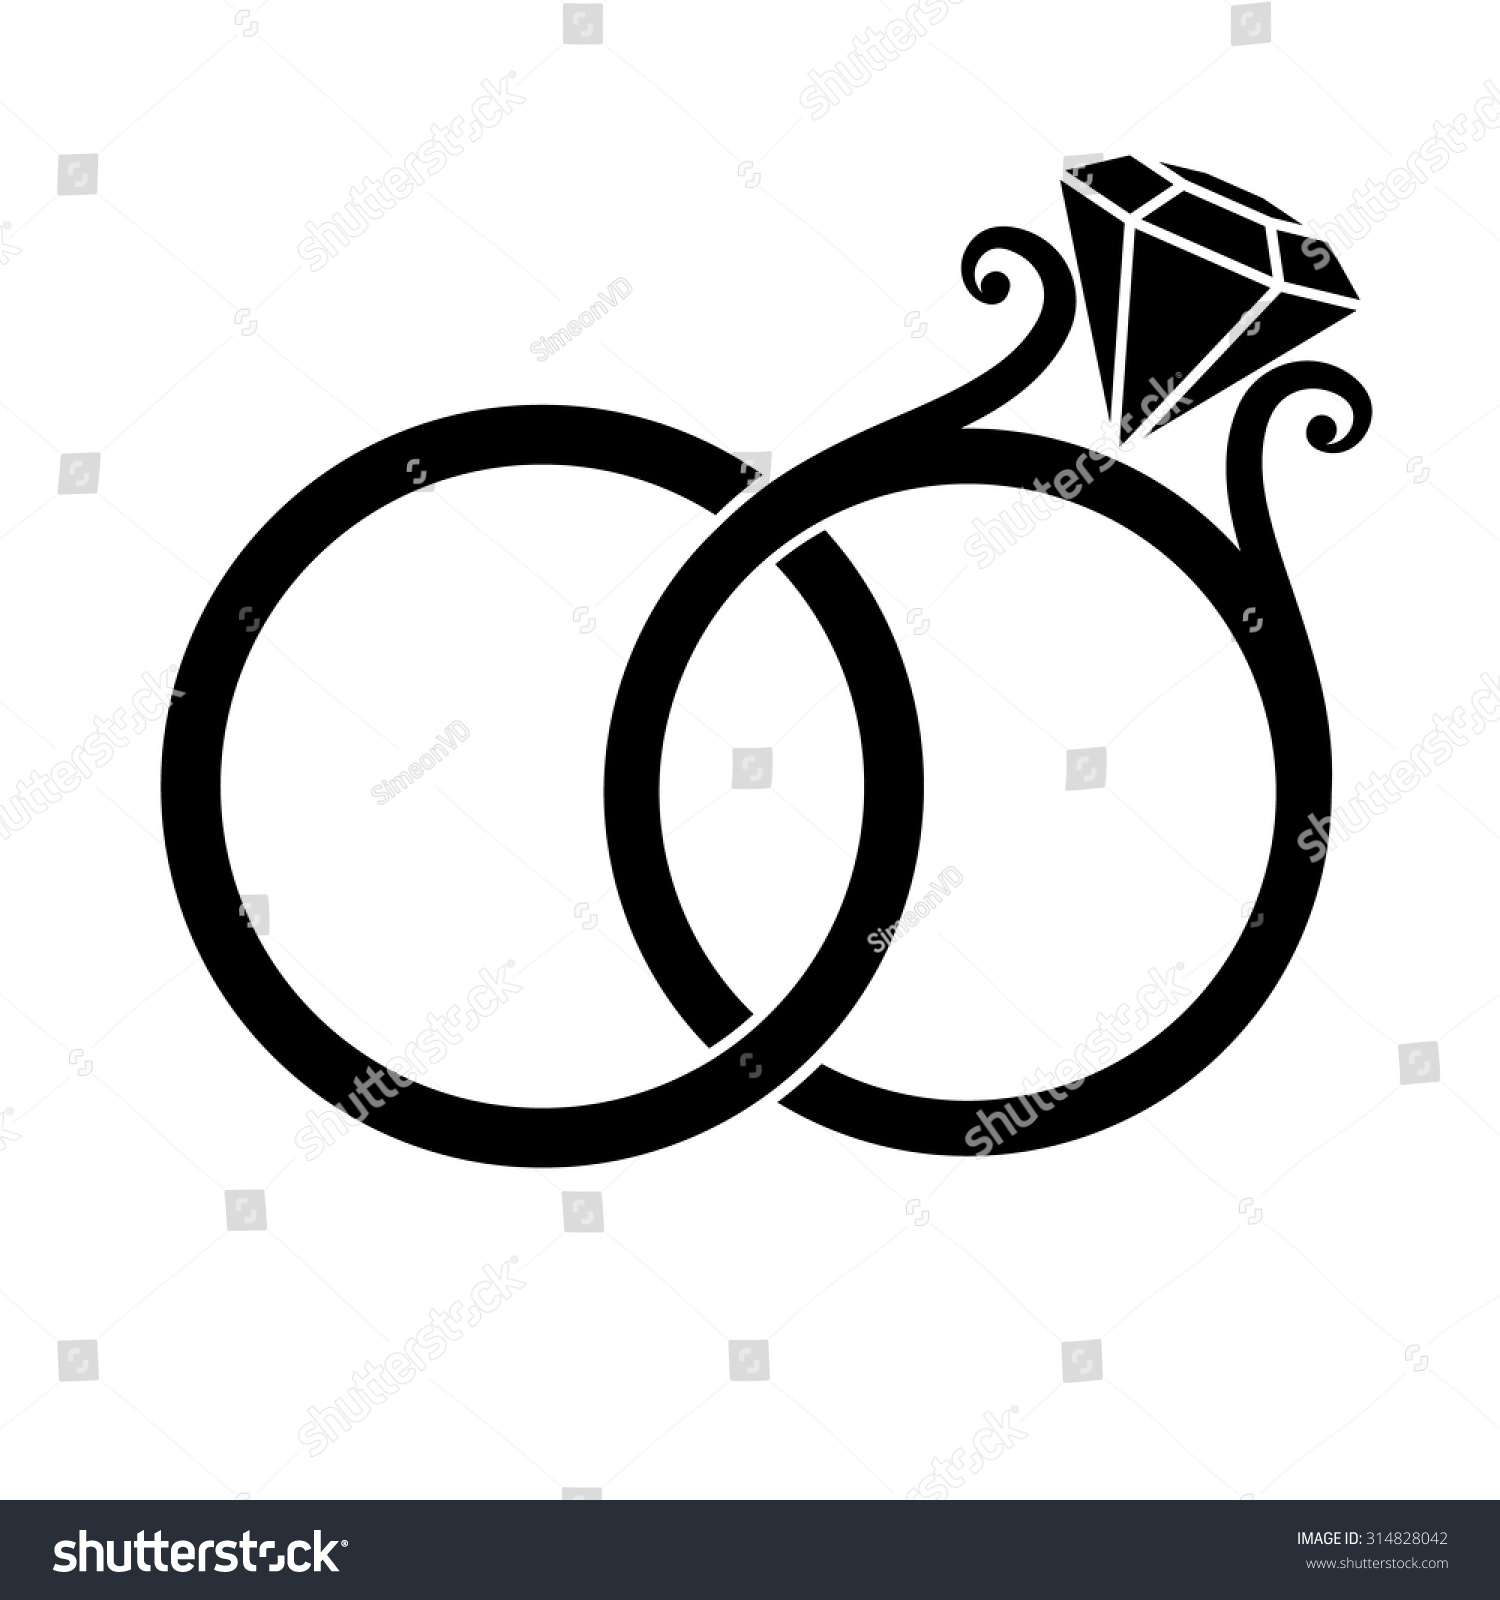 Clipart of wedding ring black and white graphic freeuse stock Wedding Ring Black And White Clipart Galleryhip.com - Free Clipart graphic freeuse stock